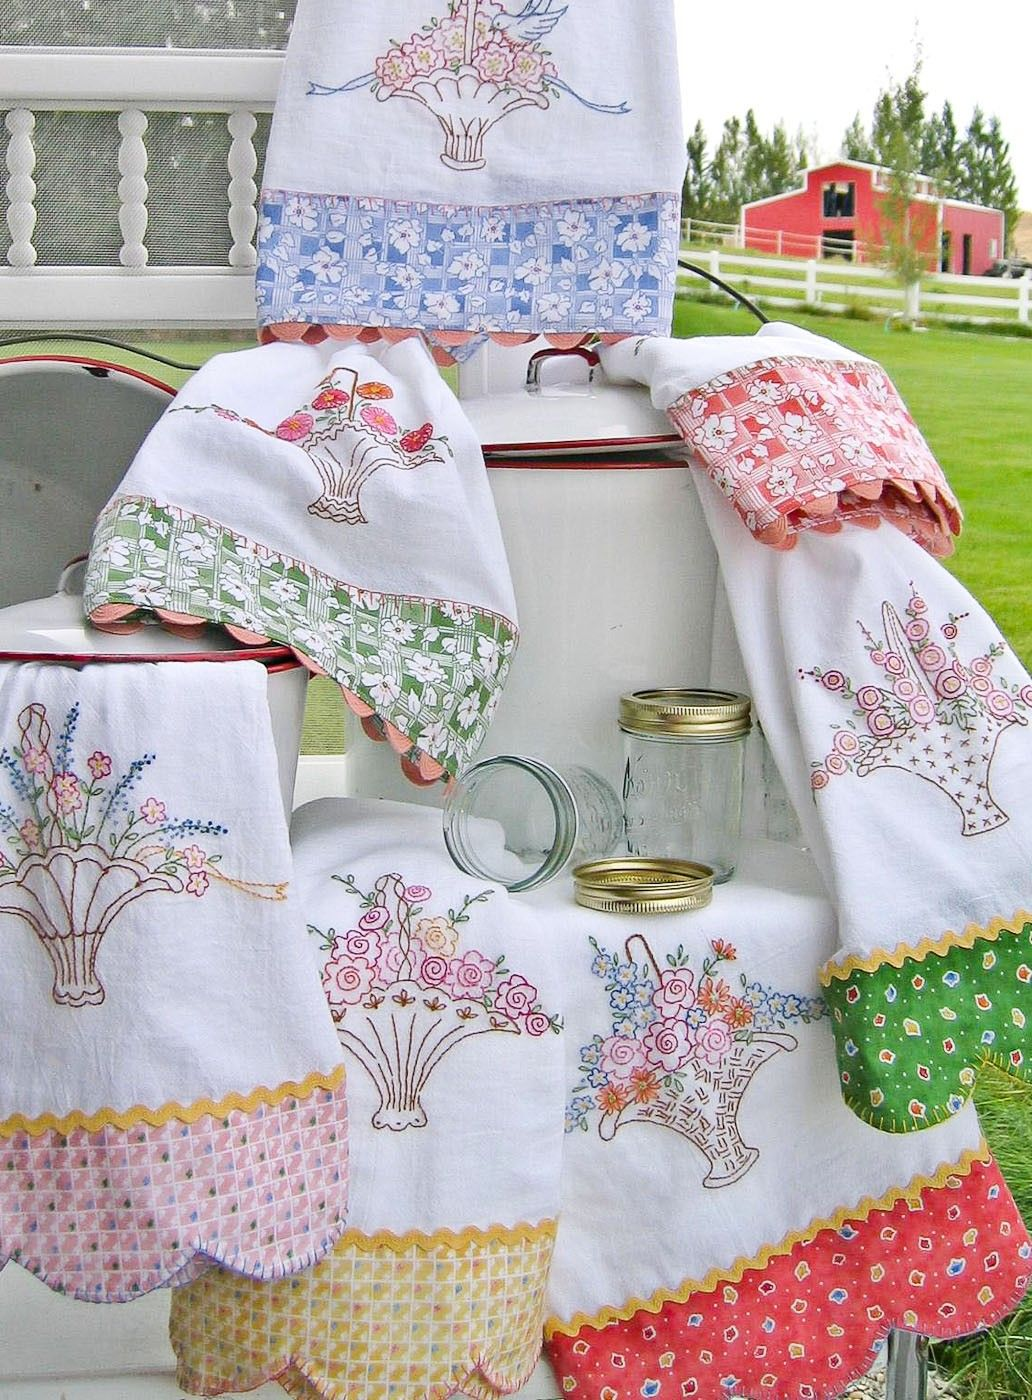 Nice series of dish towel embroidery patterns.